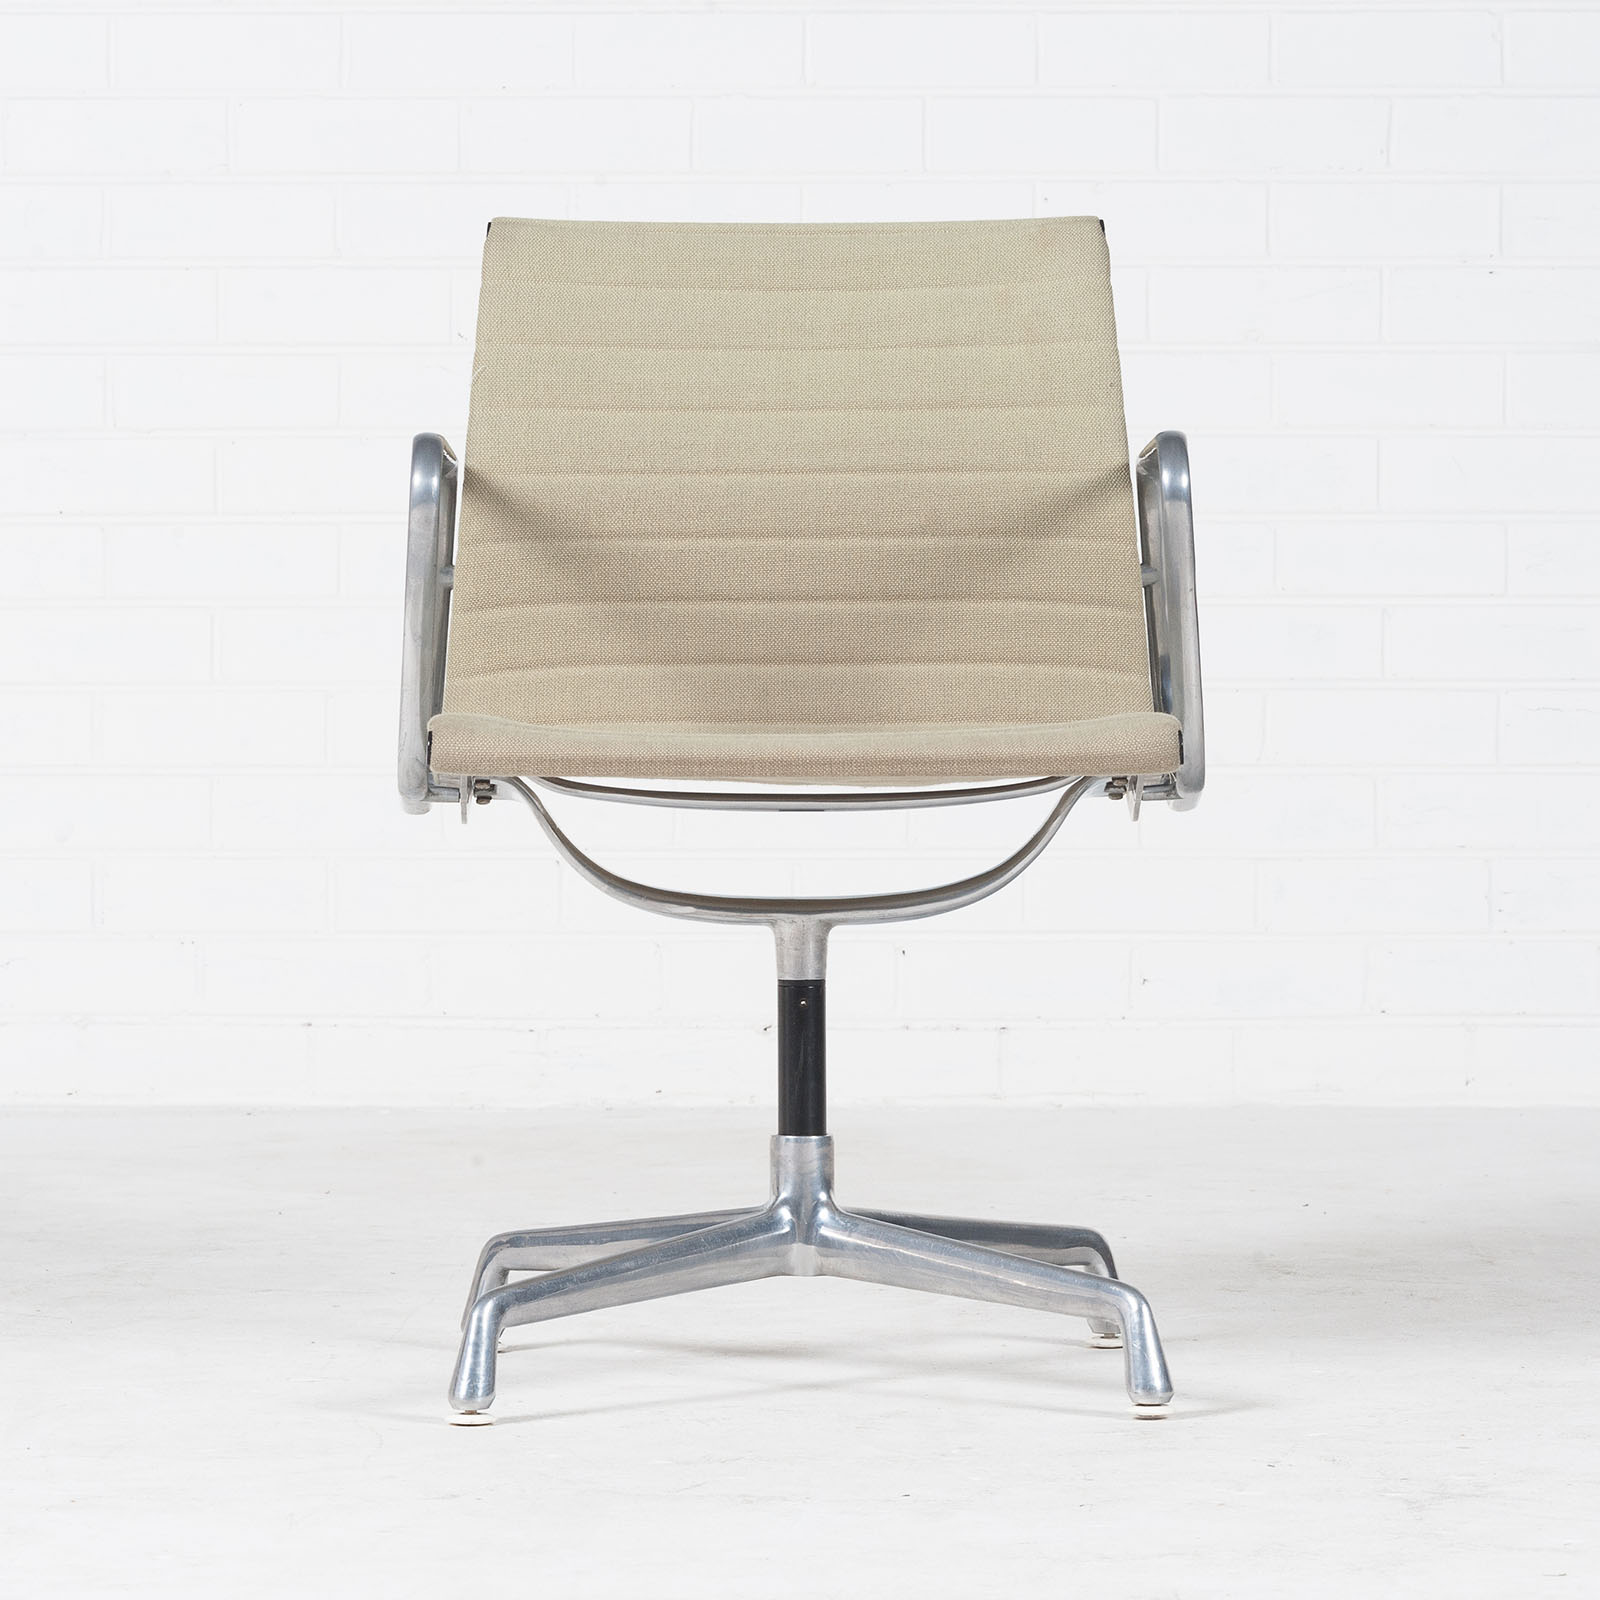 Eames Ea 108 Chair By Charles & Ray Eames For Vitra 1950s America 04